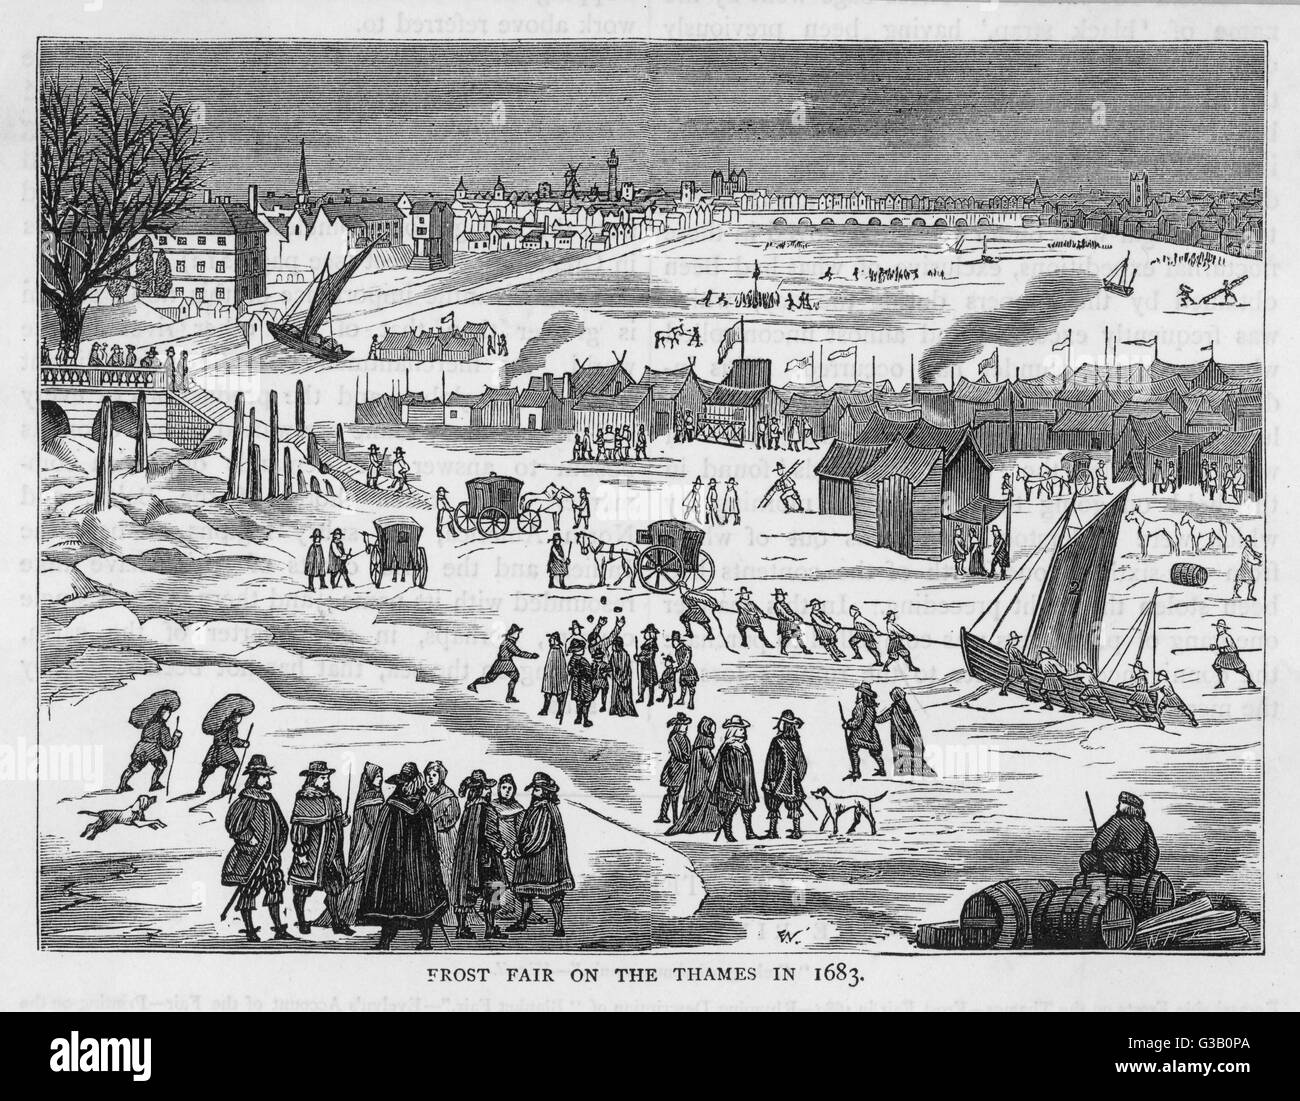 Frost fair on the Thames,  London.  People enjoying the  varied activities and stalls.       Date: 1683 - Stock Image